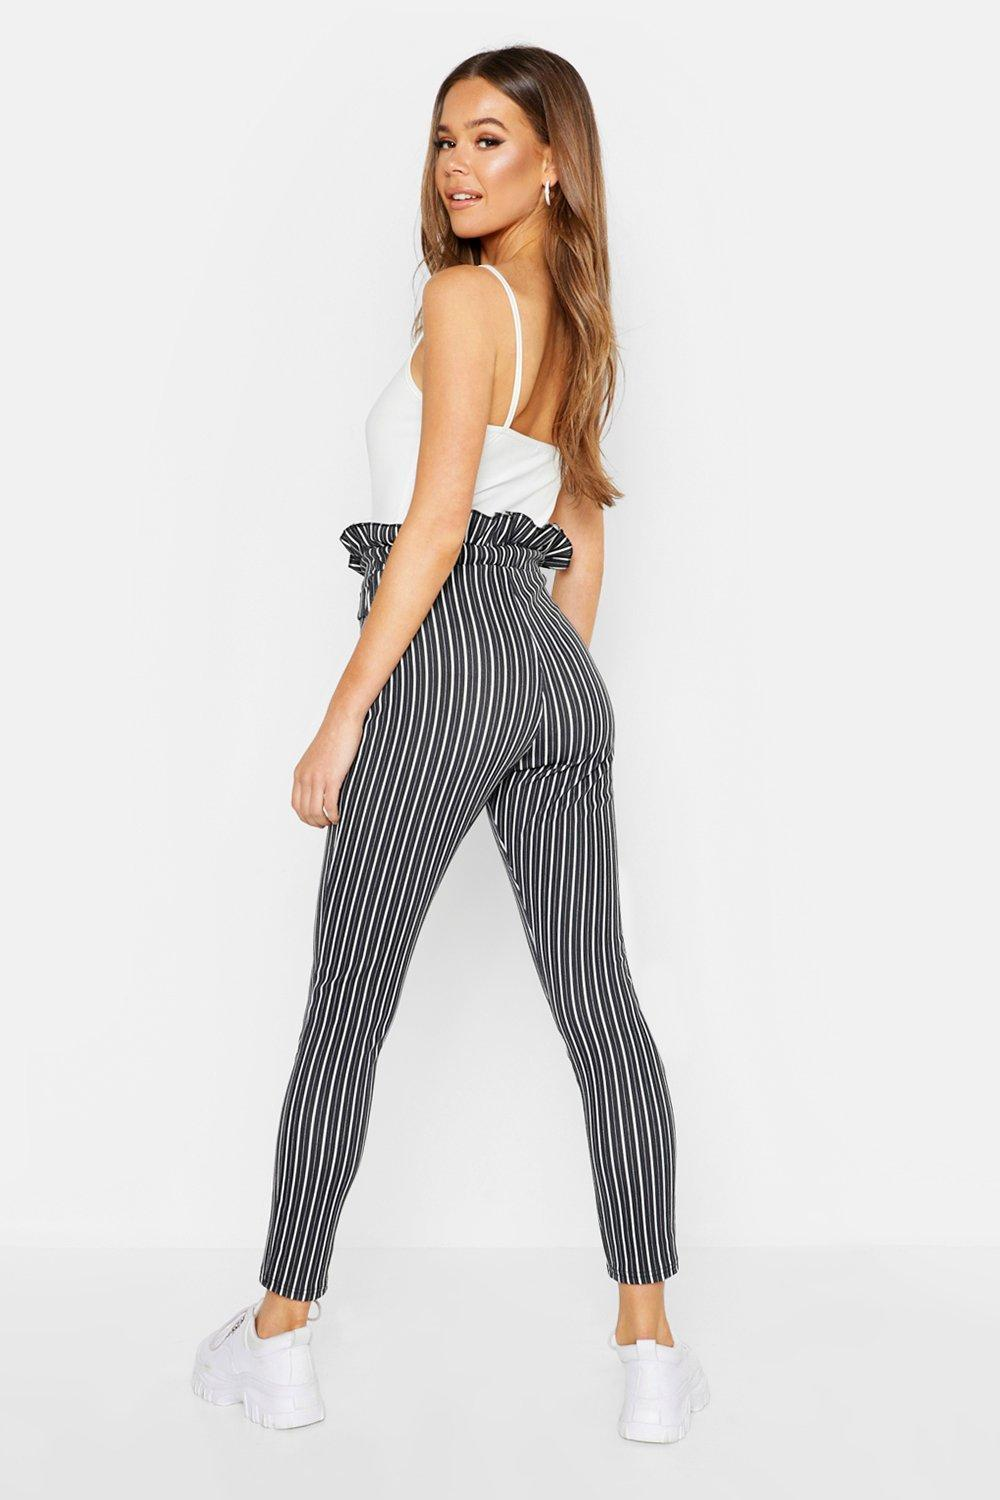 c7f0be031958 Boohoo - Multicolor Paper Bag Tie Waist Stripe Trousers - Lyst. View  fullscreen